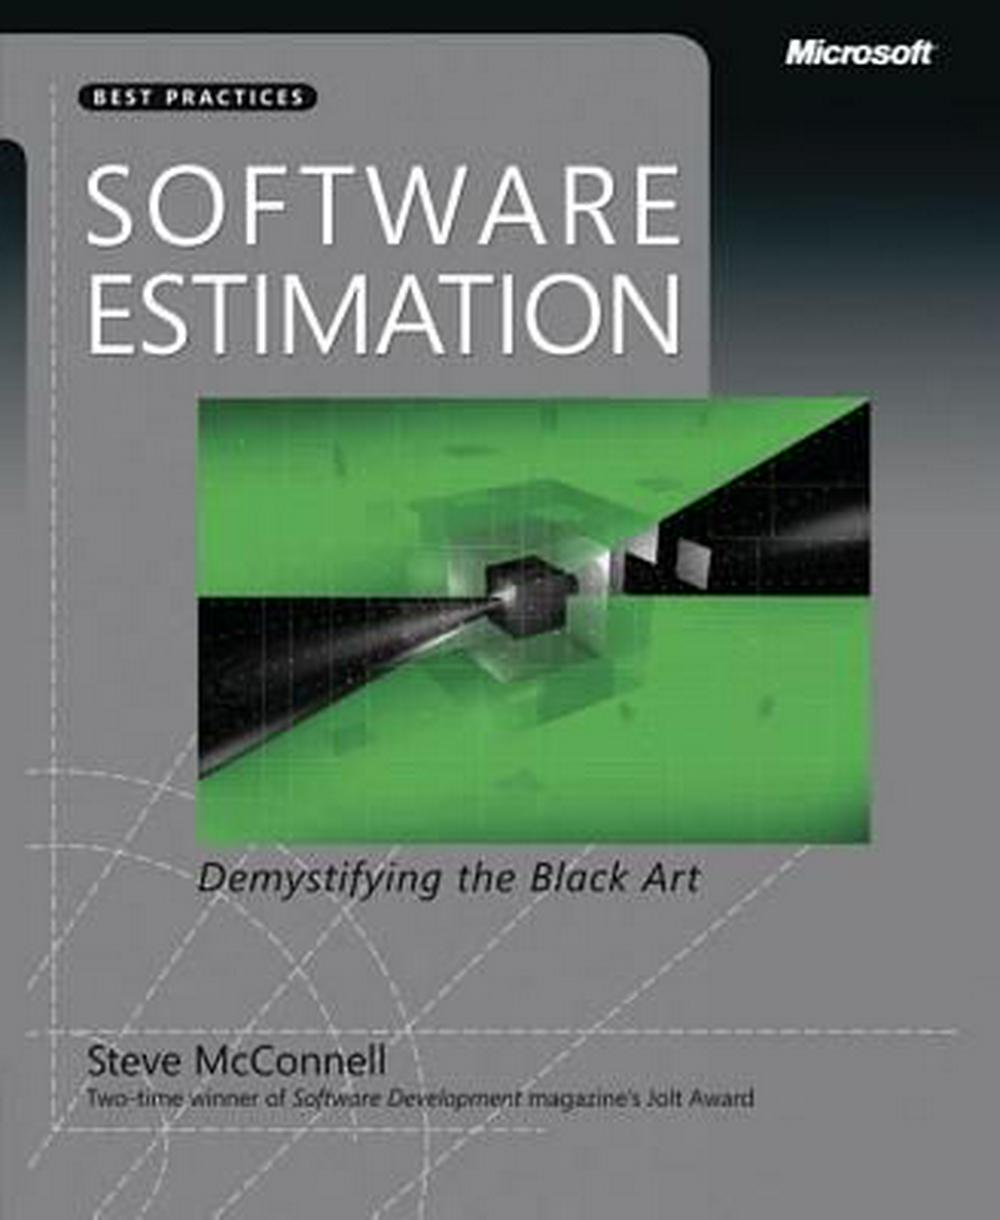 Cover Art for Software Estimation: Demystifying the Black Art, ISBN: 9780735605350